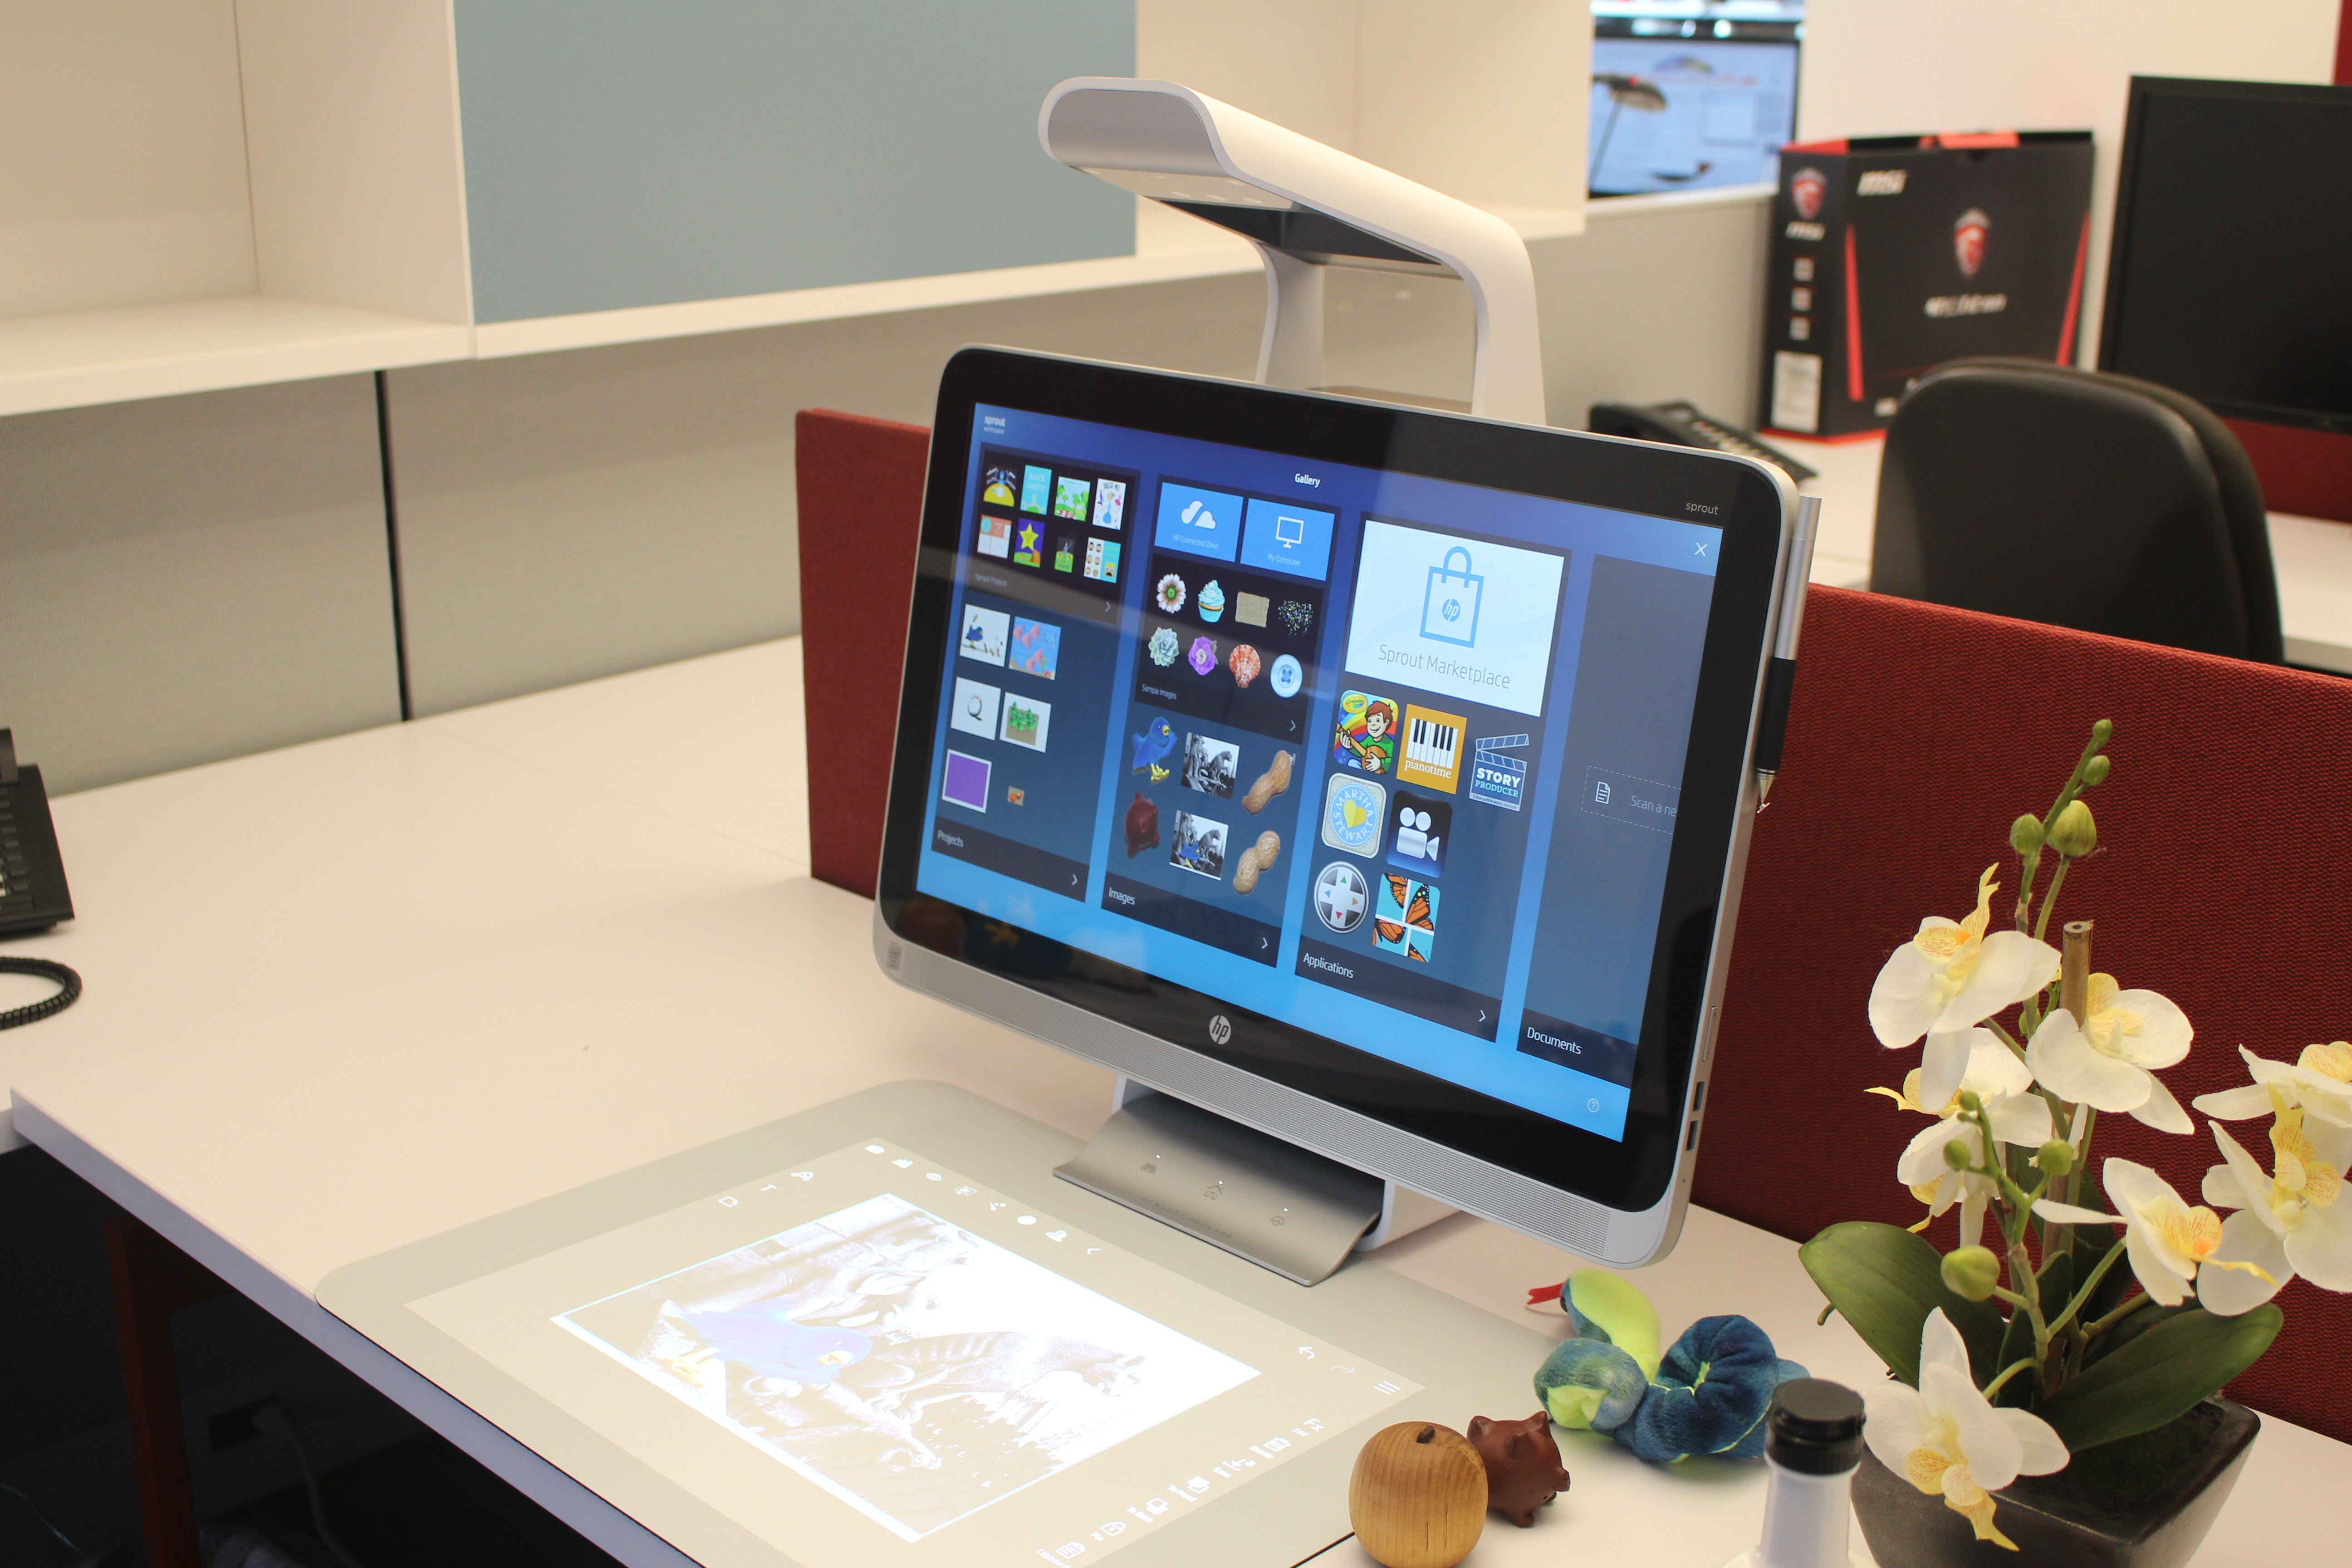 Hands-on with the HP Sprout, an imaging powerhouse built into a touch-friendly PC | PCWorld